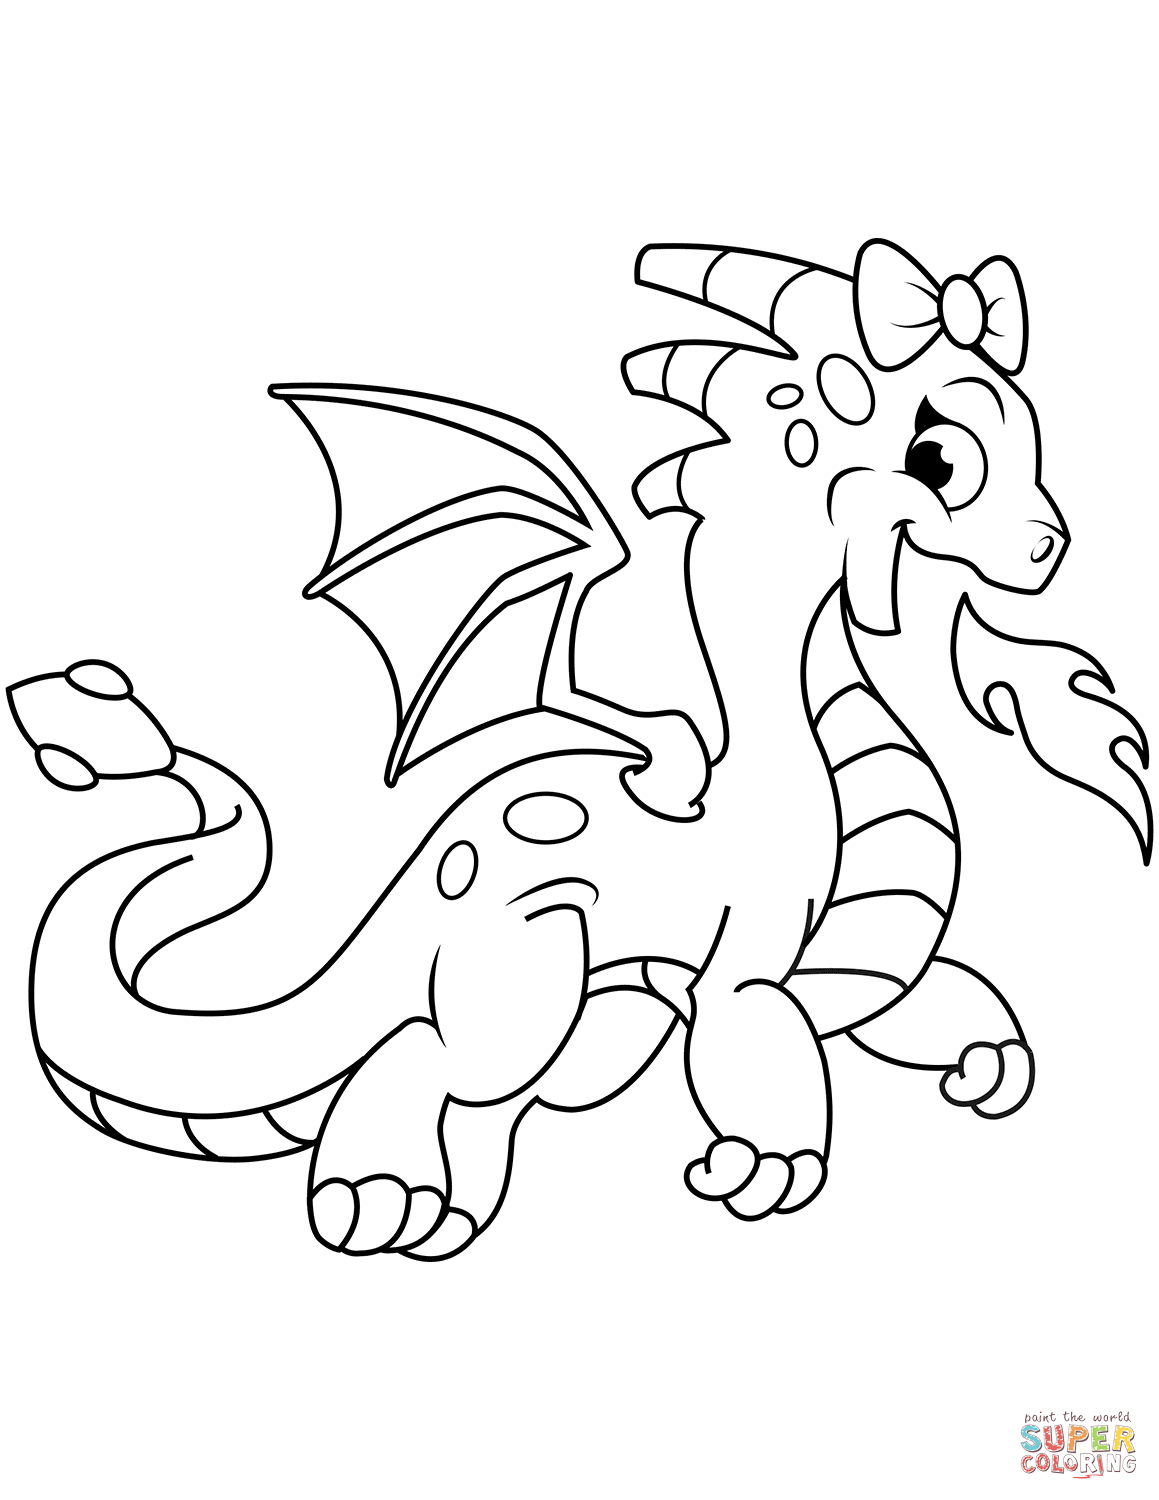 The best free Traceable coloring page images. Download ...